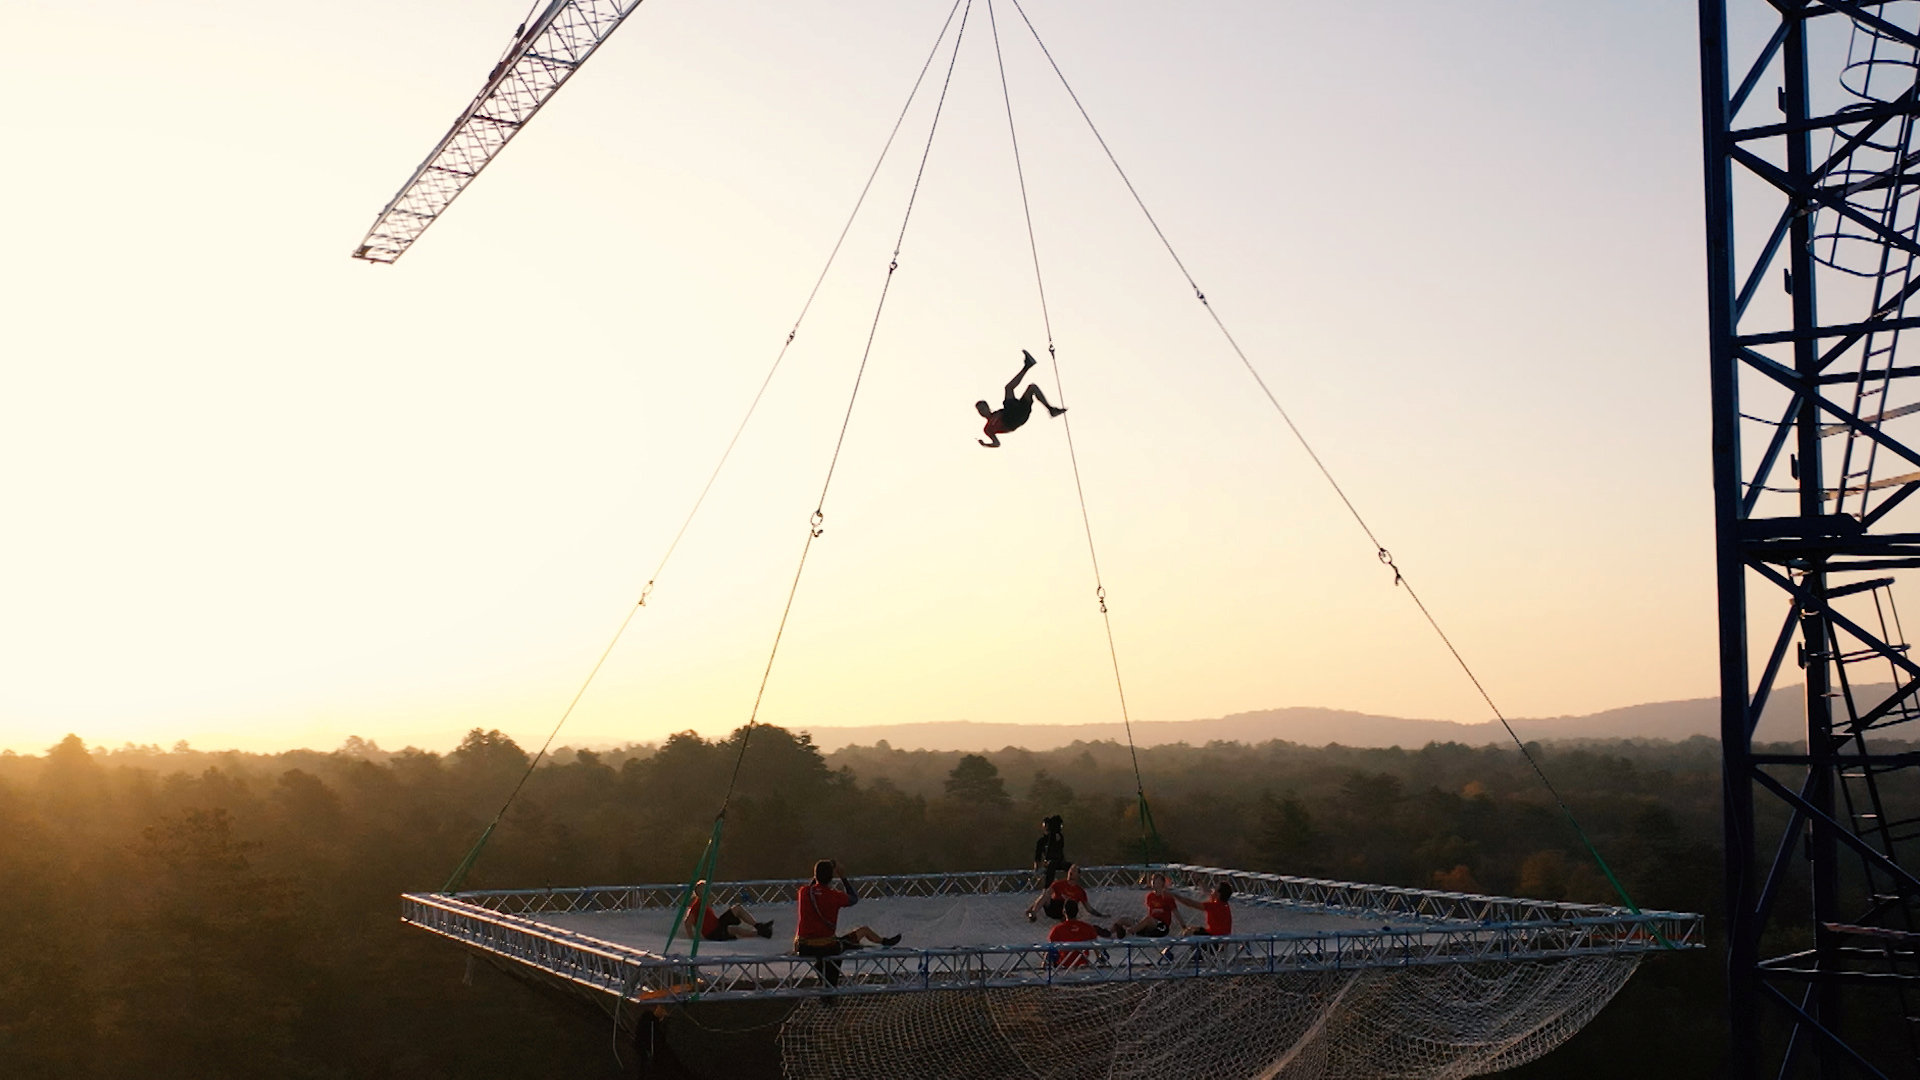 Daredevils build 'world's largest trampoline,' suspend it from crane 100 feet above the earth